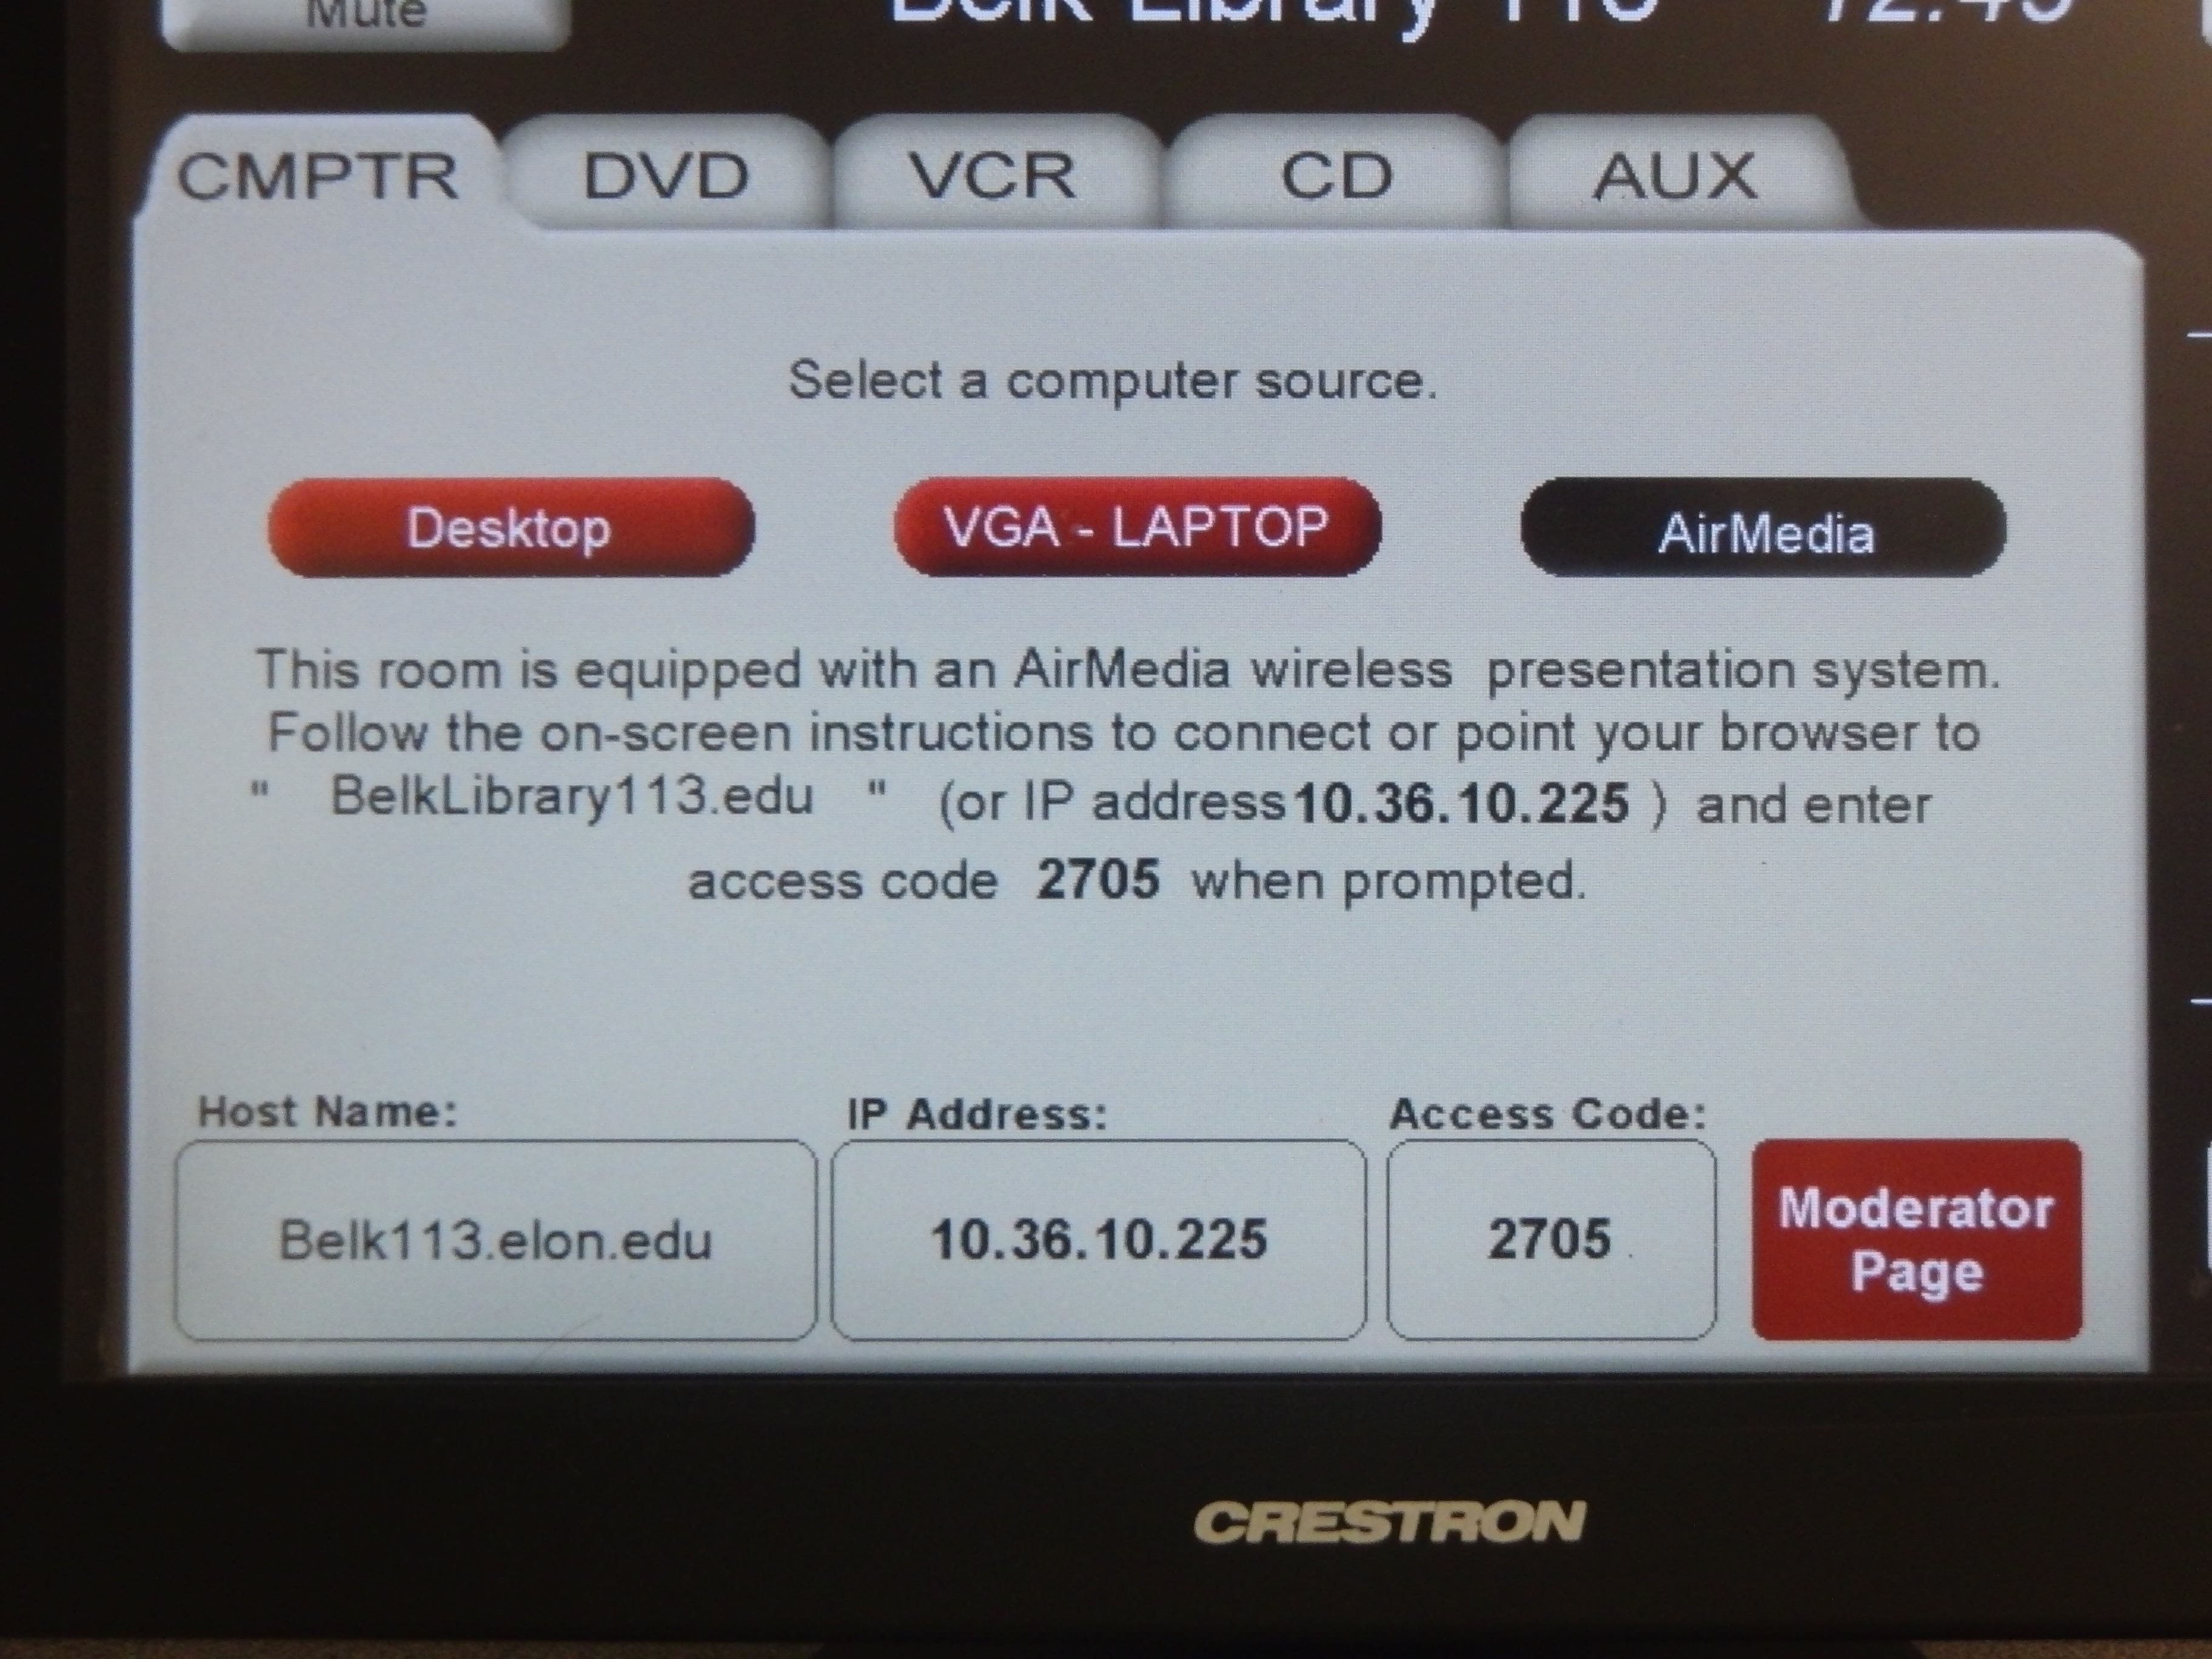 A photo of the screen under the CMPTR tab on the touch panel.